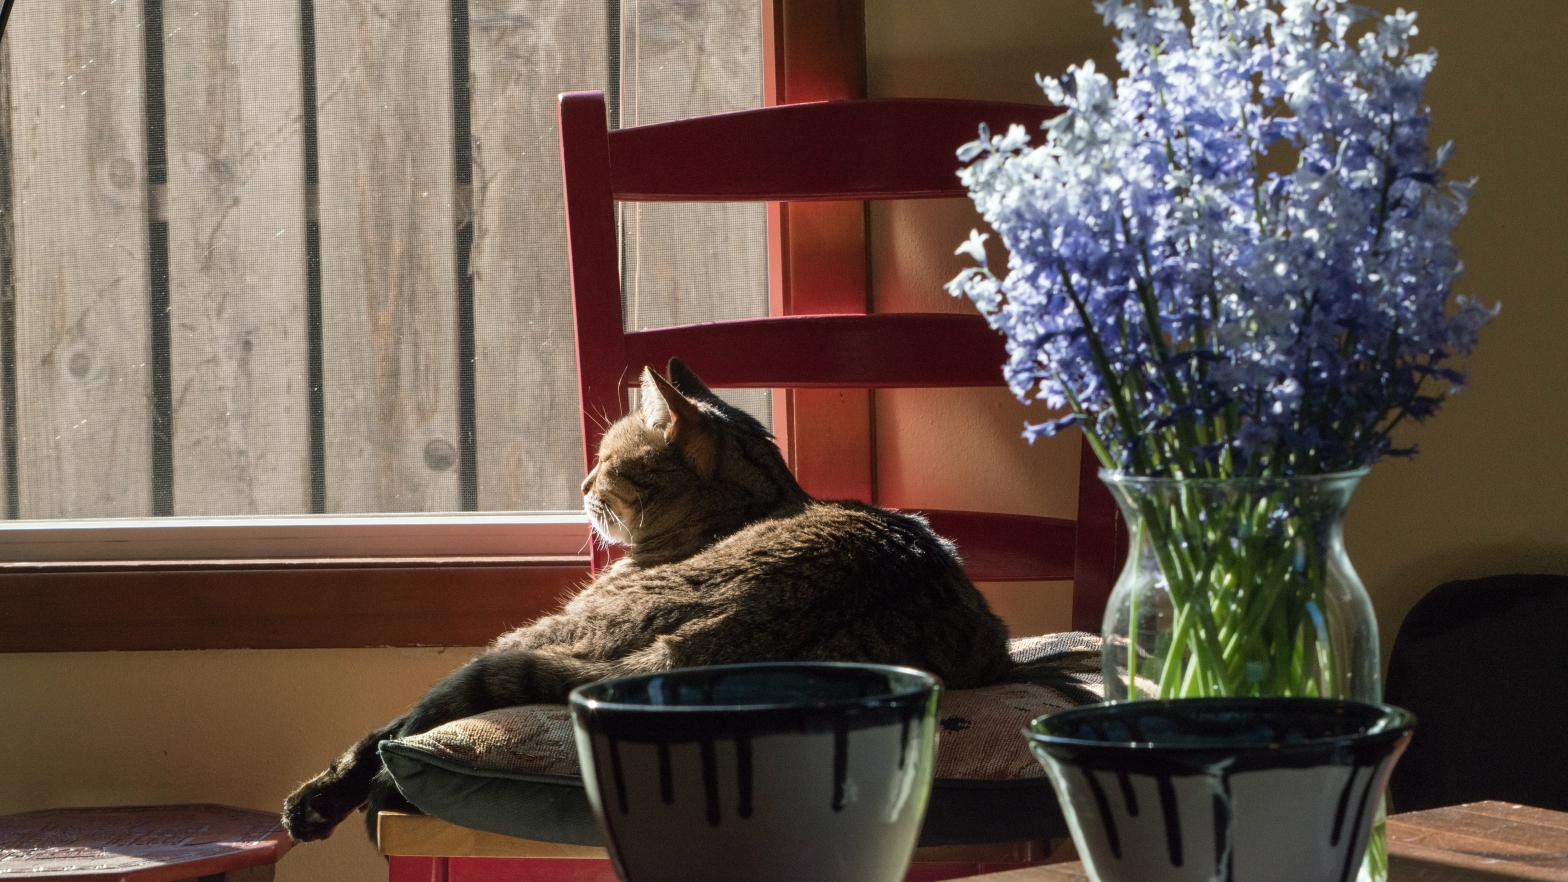 Image shows a cat on a chair by the window. In the foreground is a table with a vase of flowers and two coffee mugs